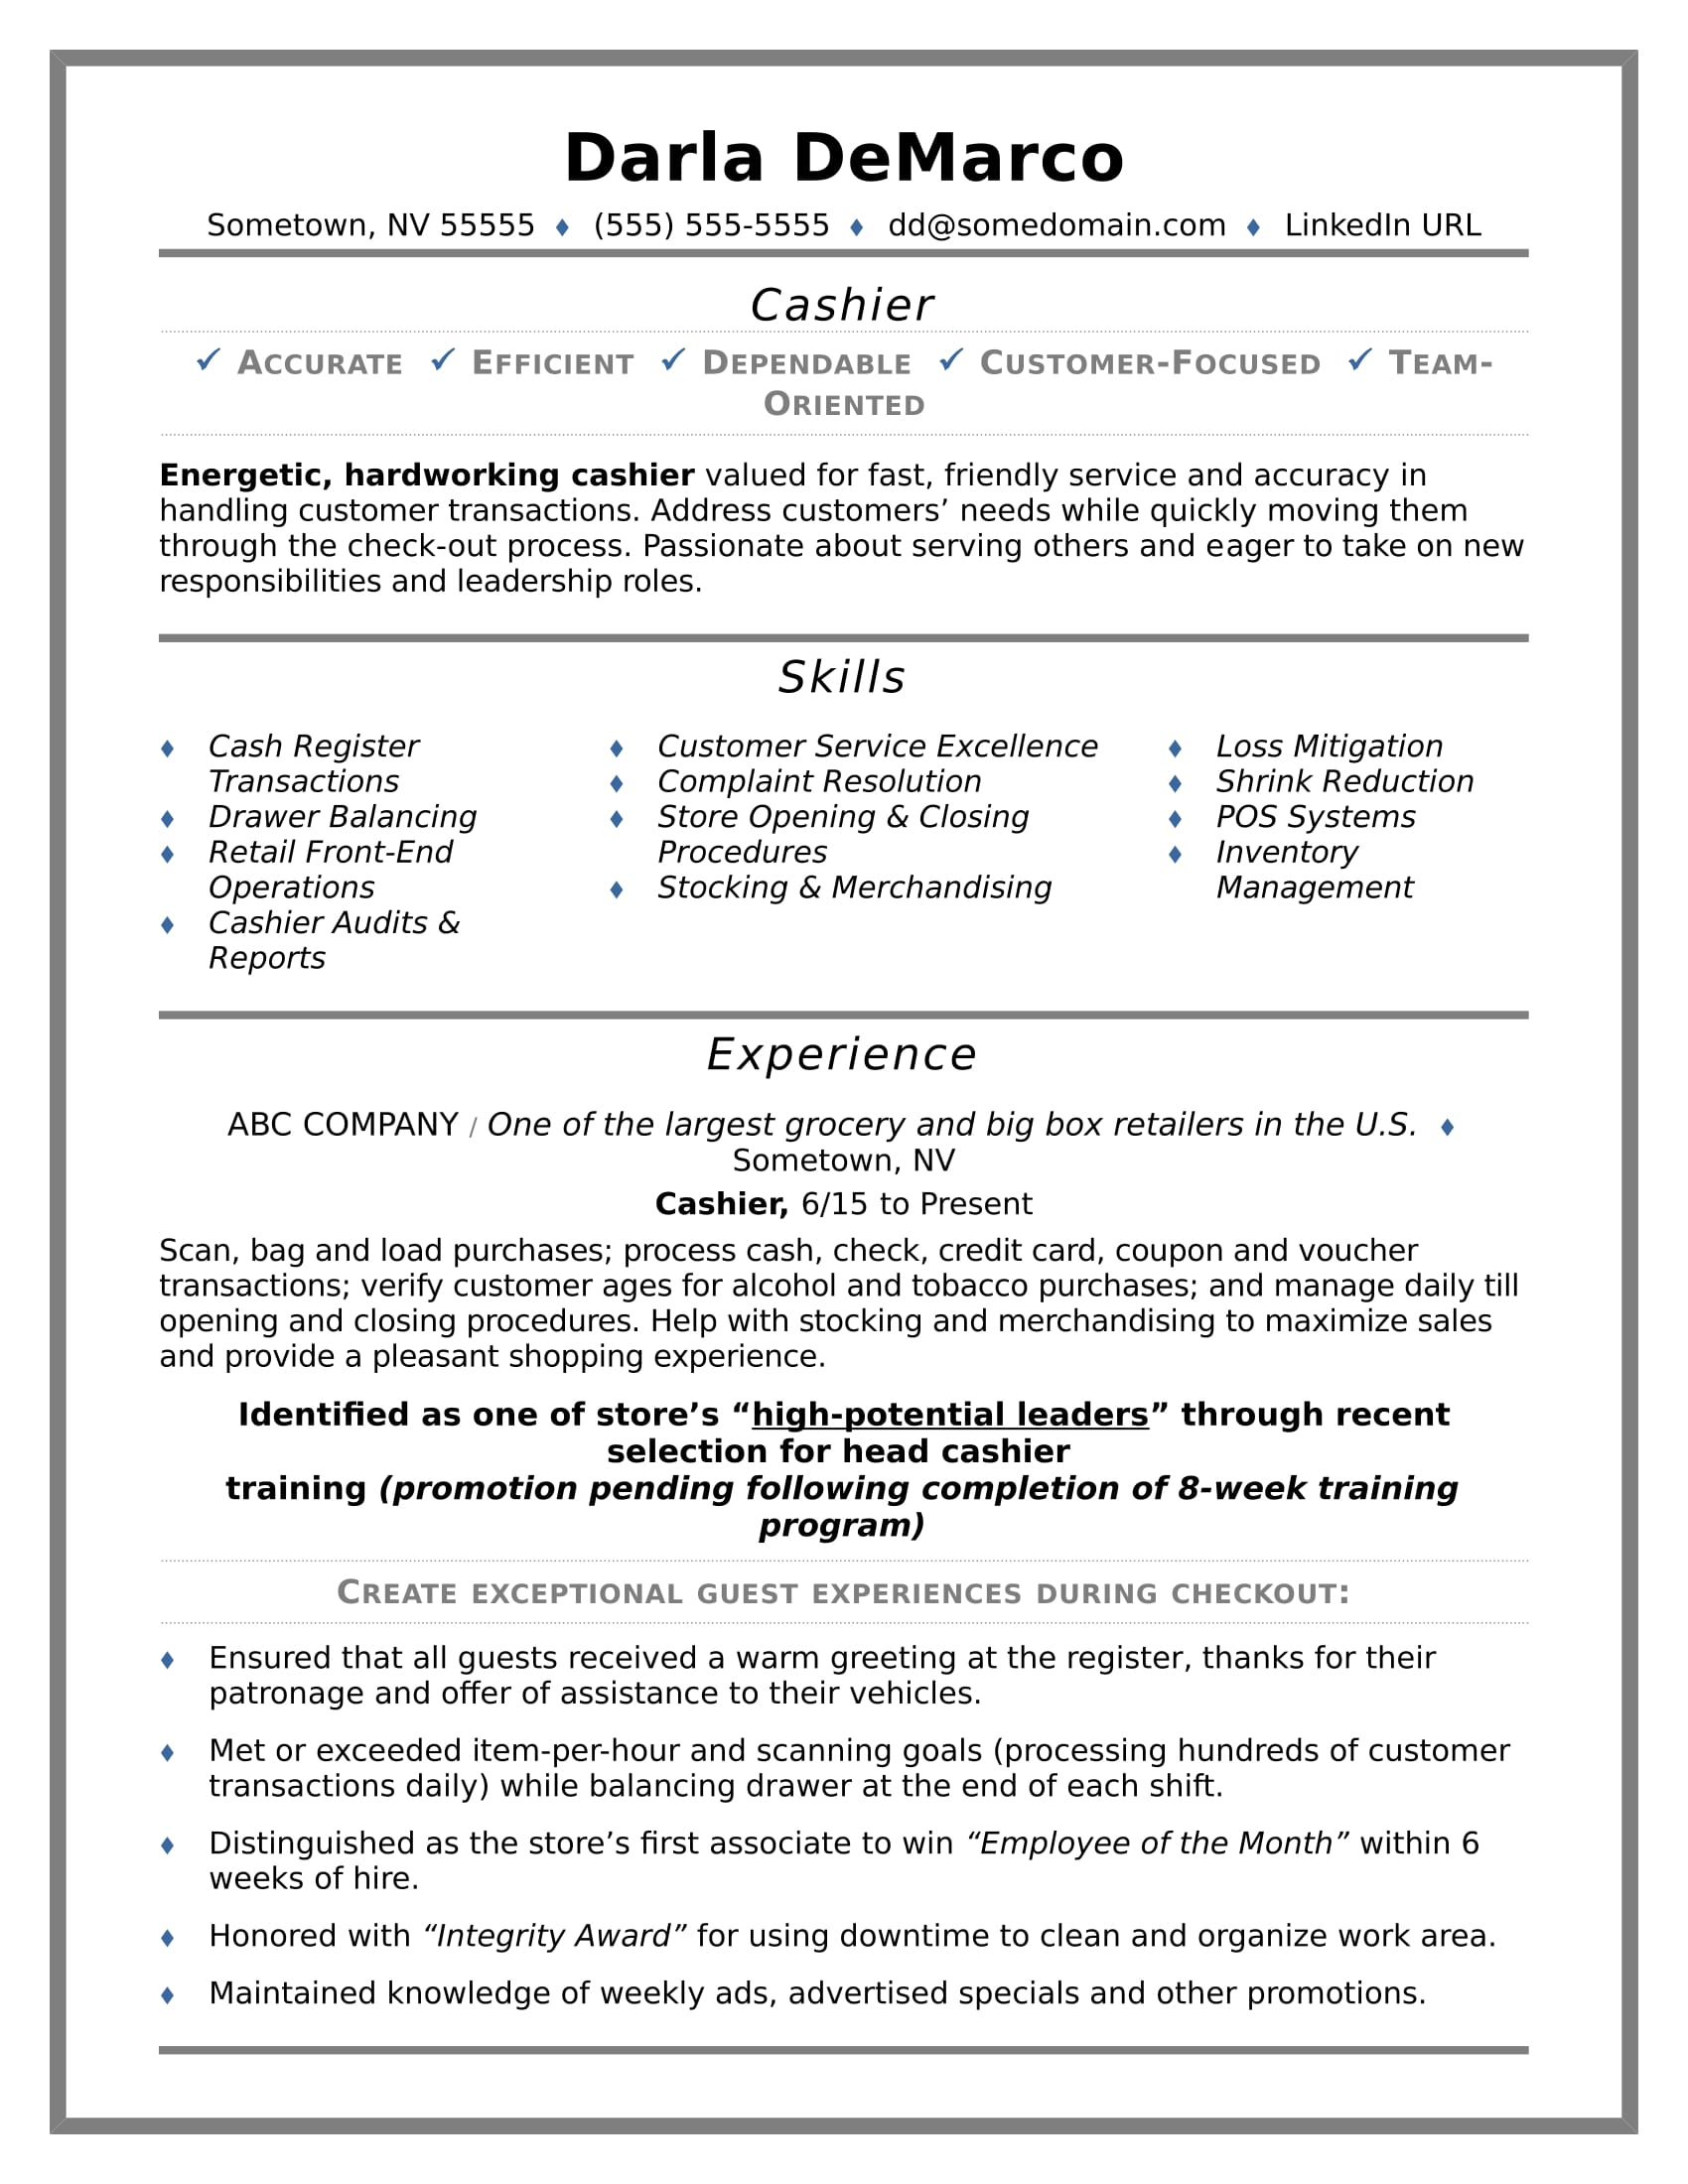 cashier resume sample - Resume Examples